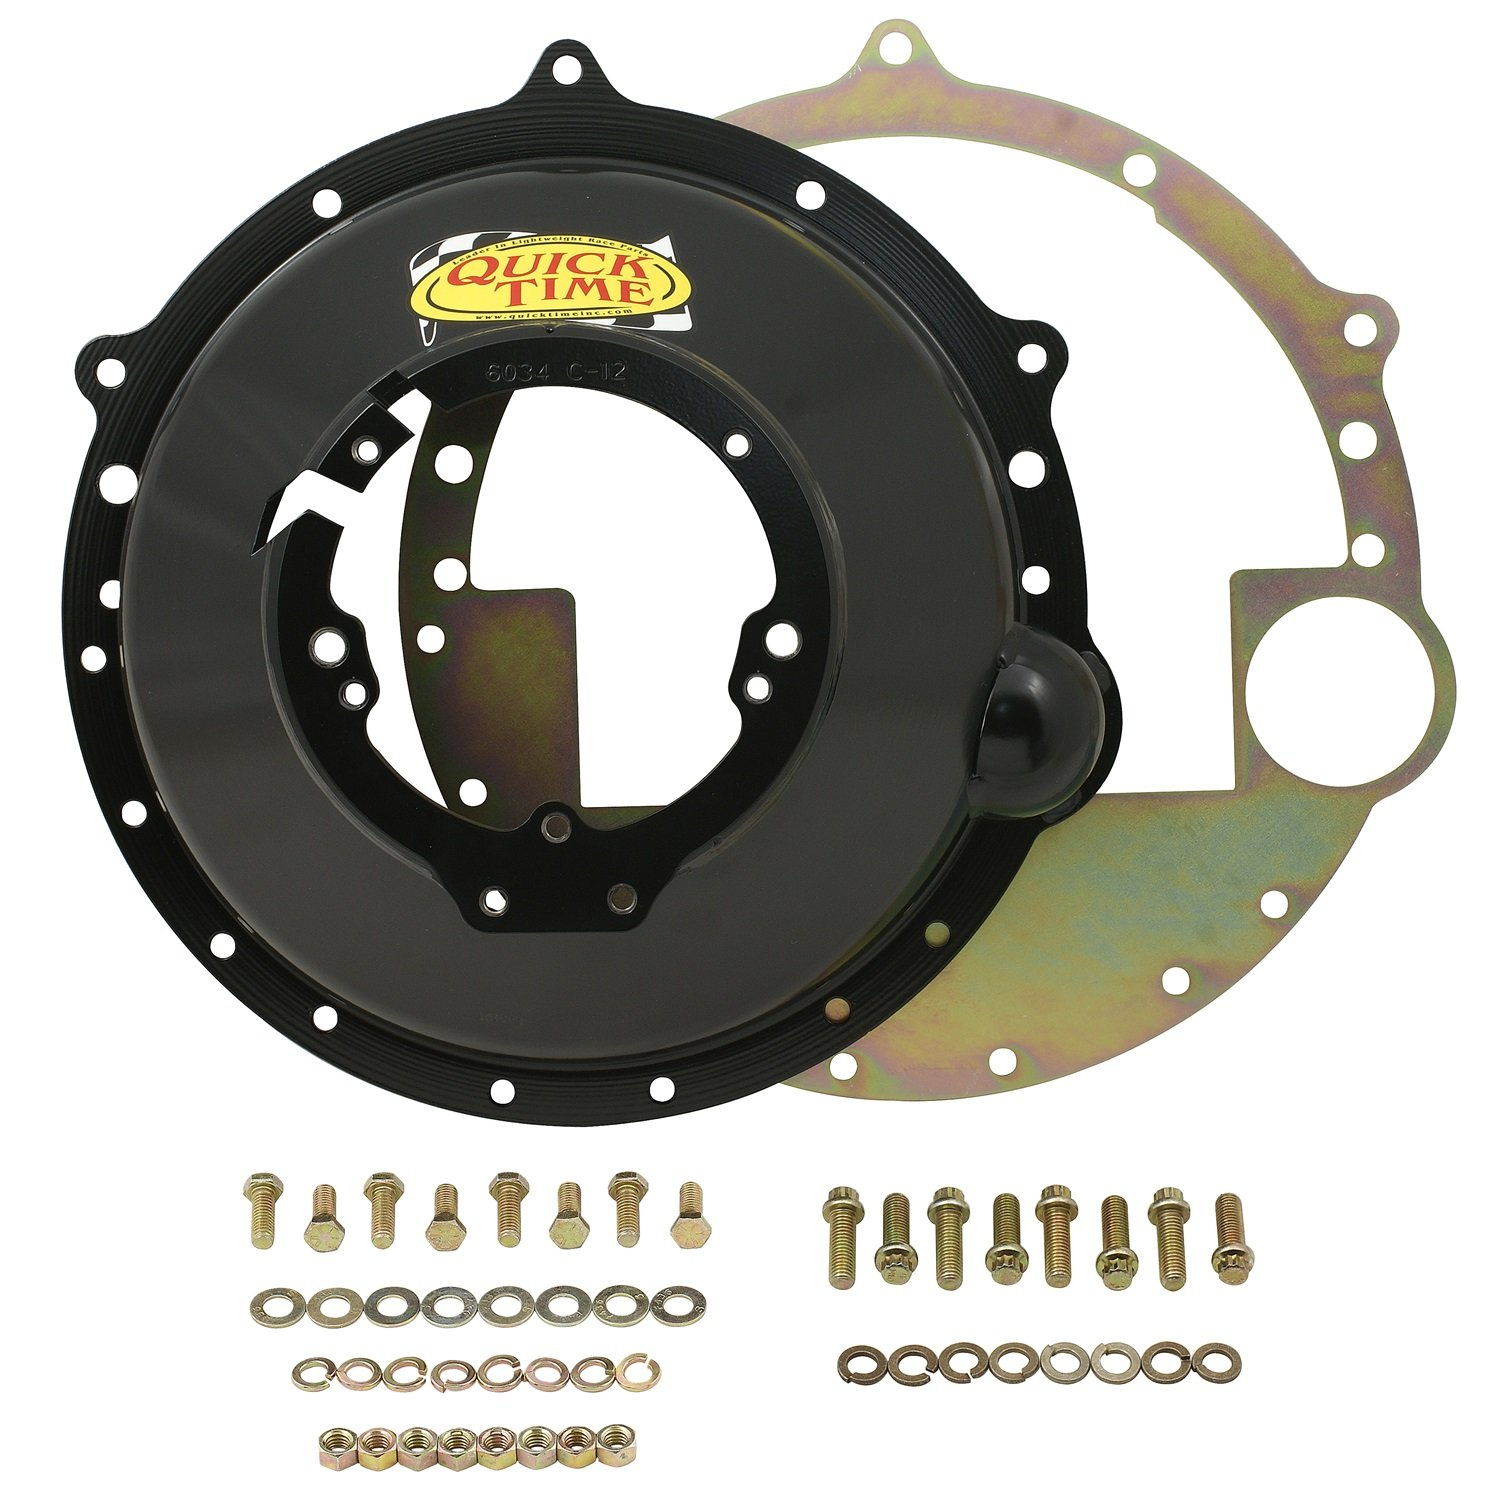 QuickTime (RM-6034) Chevrolet LS Engine to Corvette C-6 Manual Transmission Bellhousing